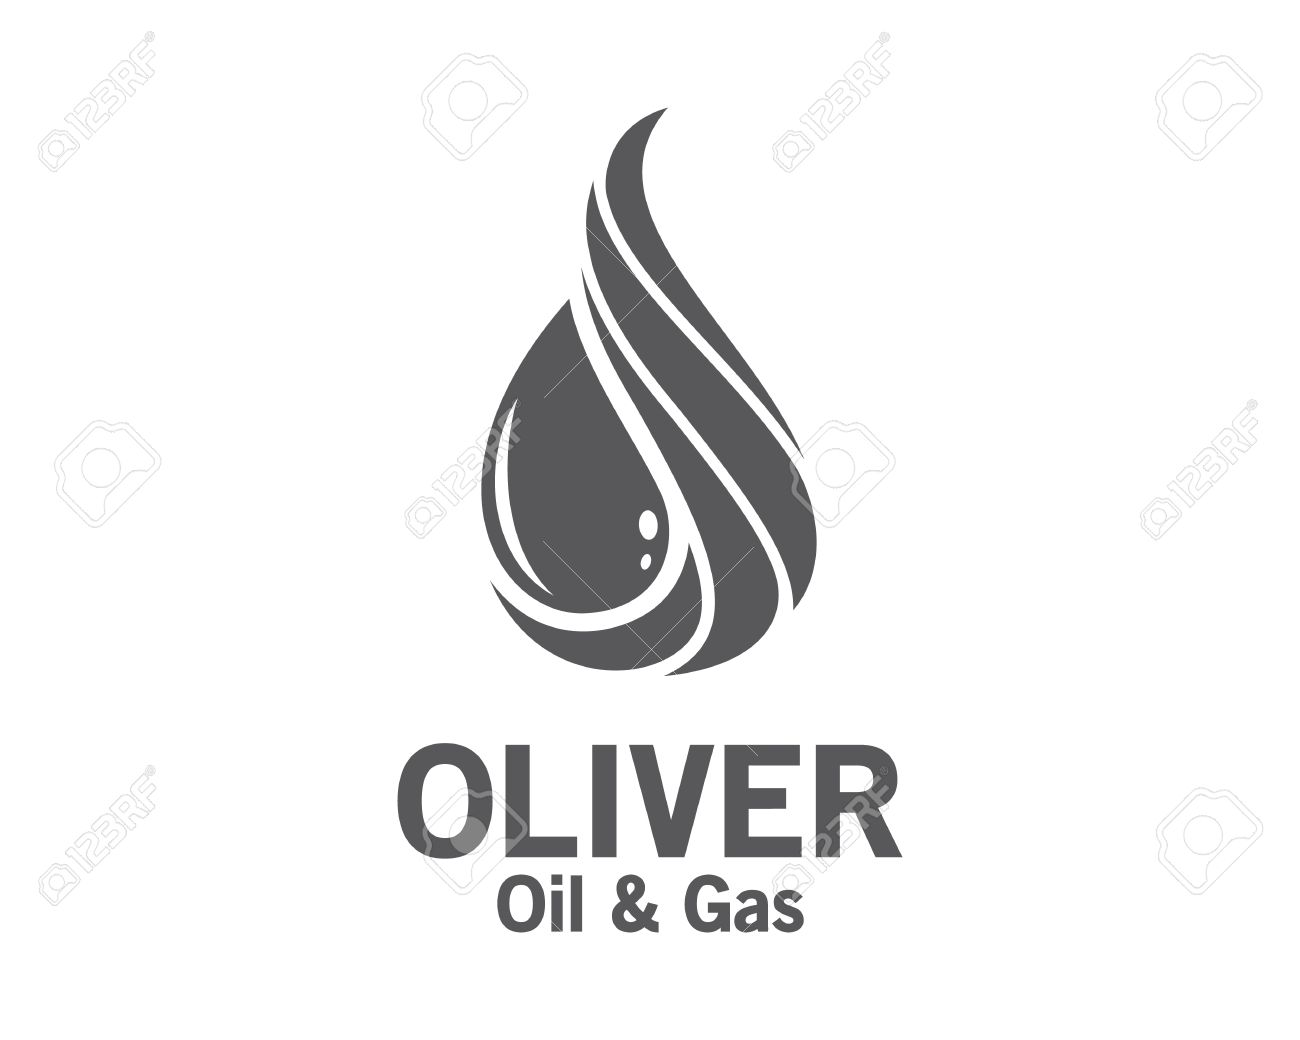 3D oil and gas logo design. Colorful 3D oil and gas logo vector template. oil and gas concept with 3D style design vector. - 53142395